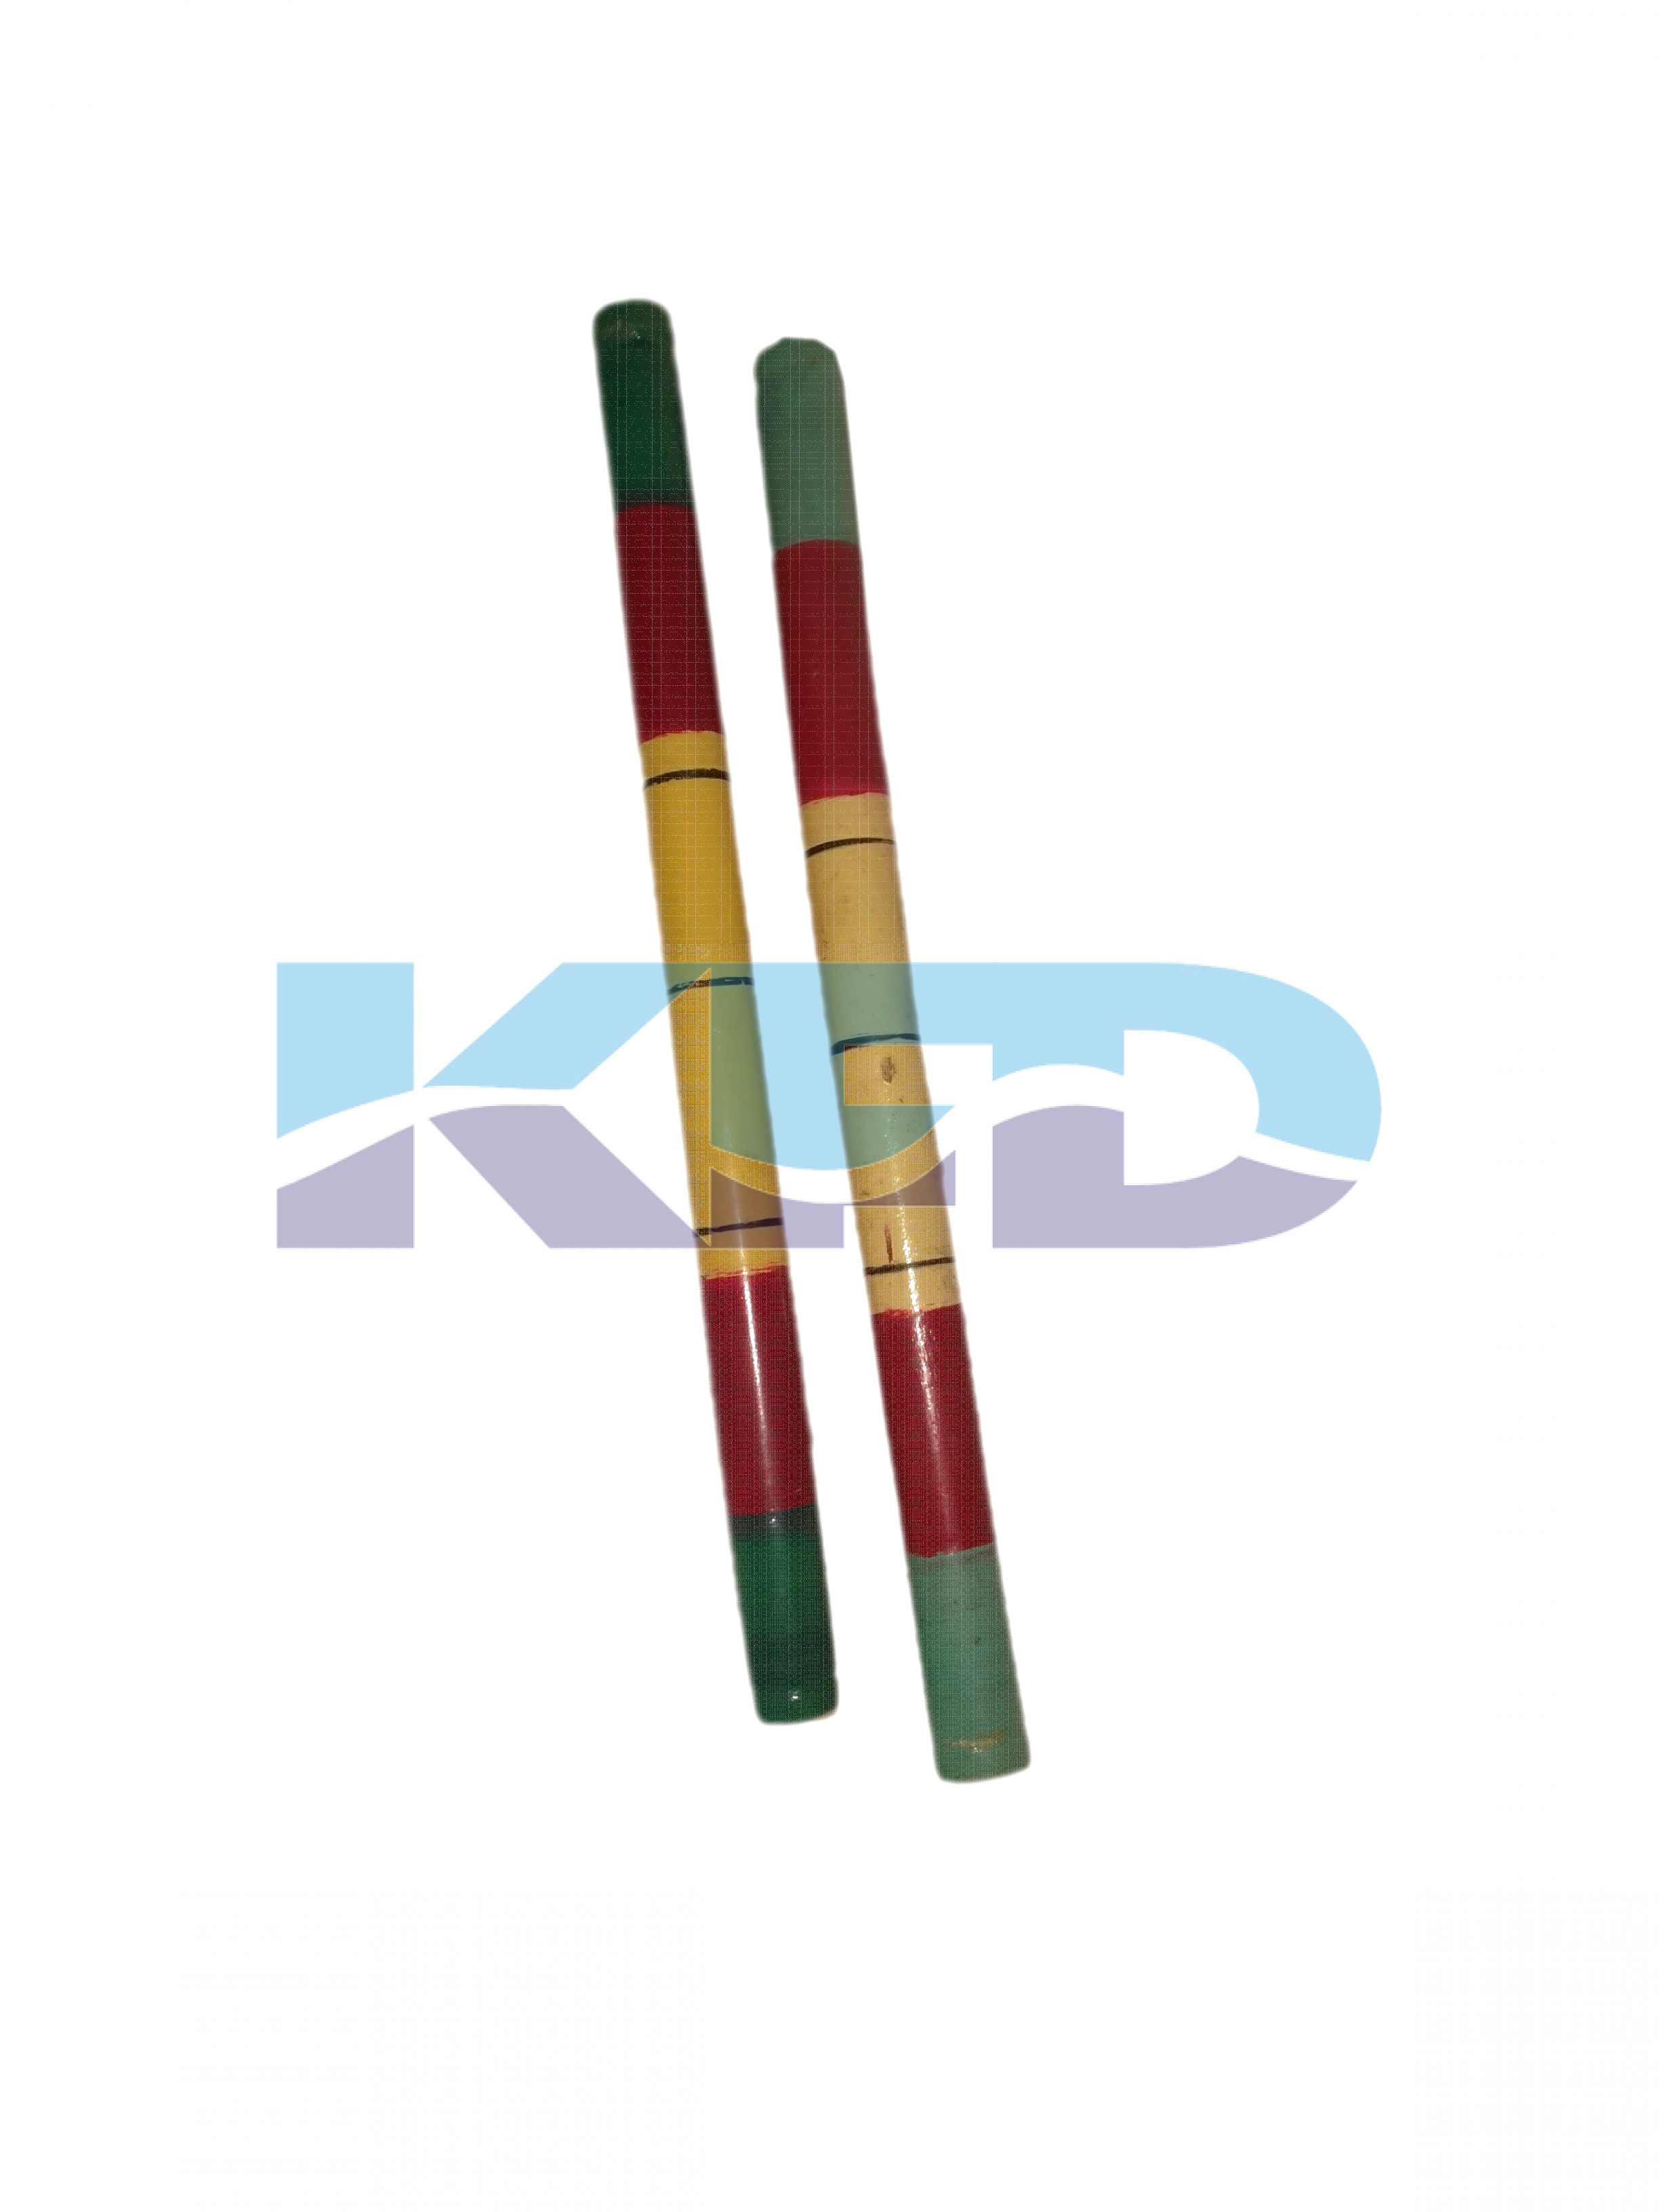 Dandiya Stick 6 Pair Accessories For Boys and Girls